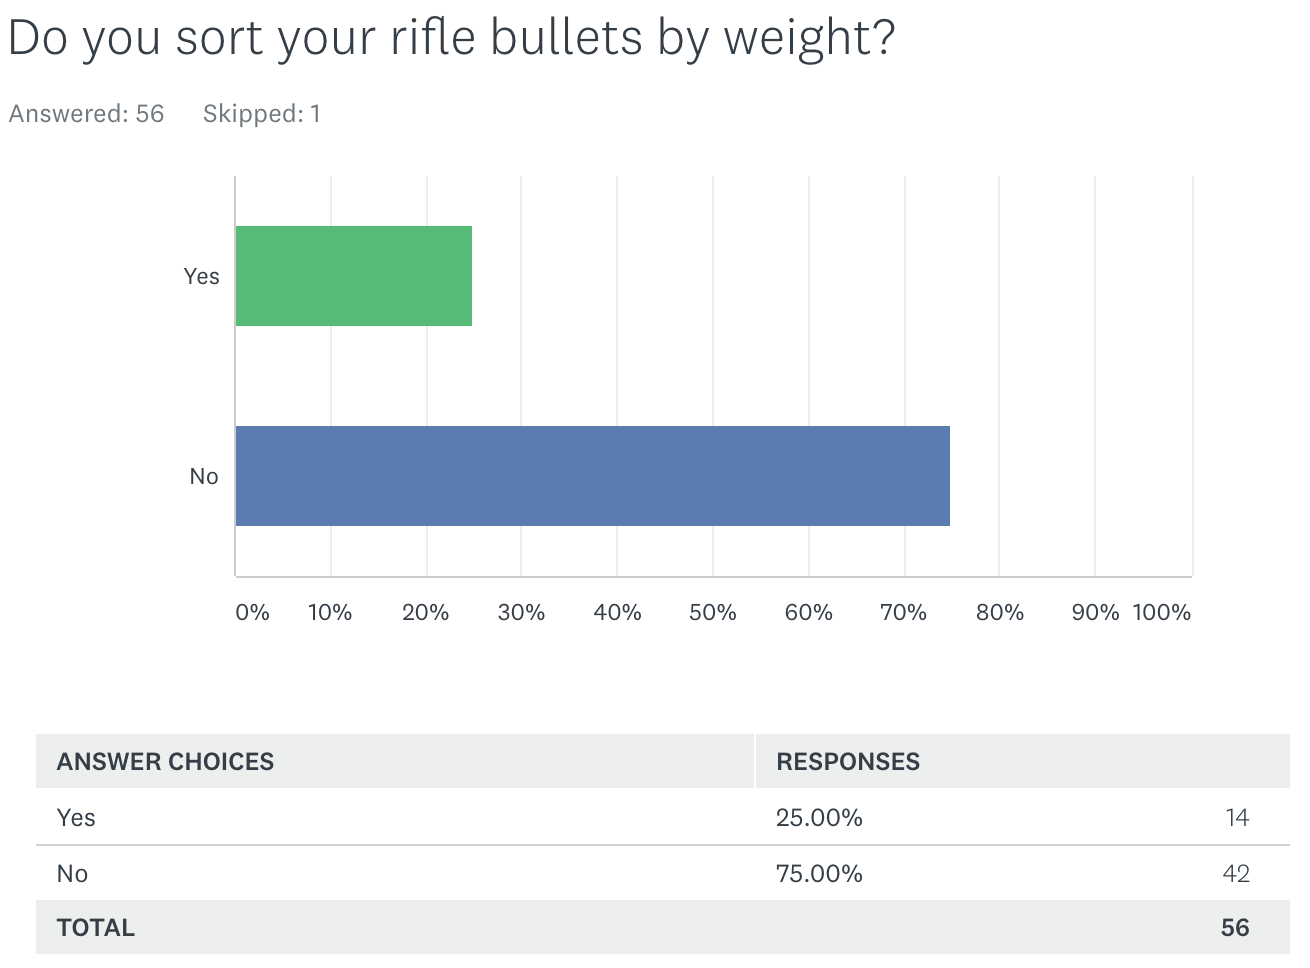 Survey Results: Do you sort your rifle bullets by weight?